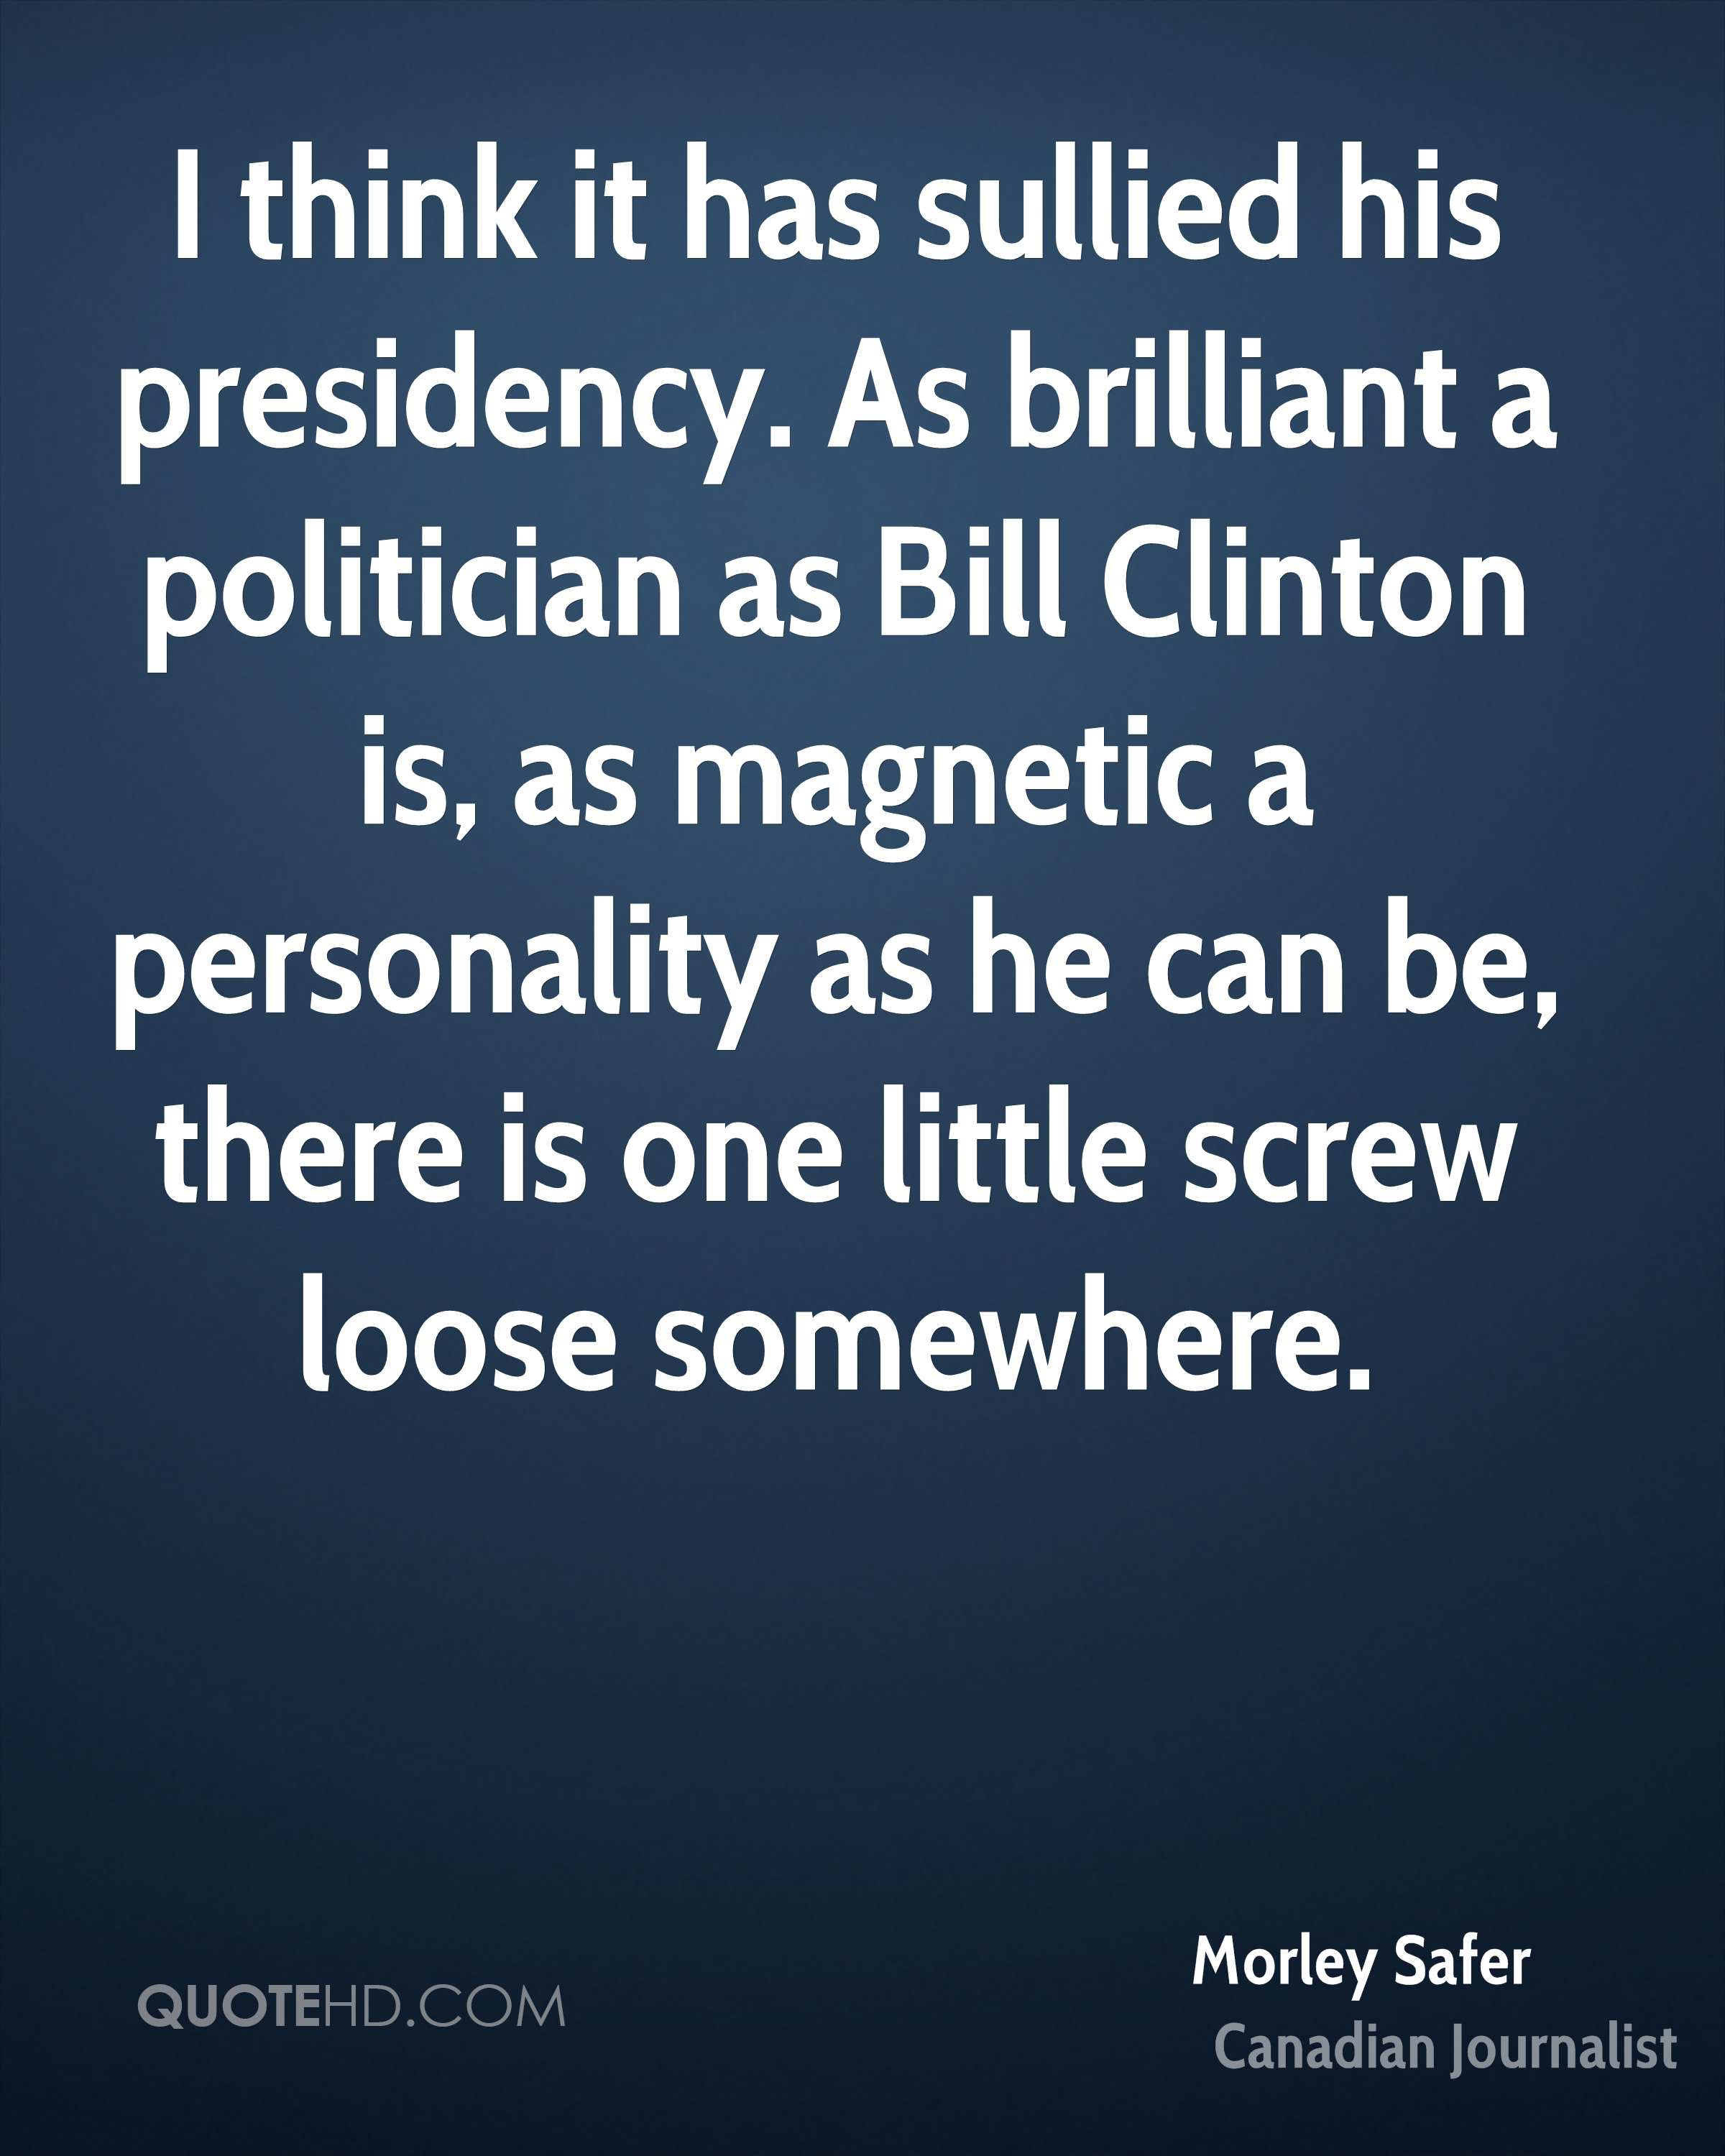 I think it has sullied his presidency. As brilliant a politician as Bill Clinton is, as magnetic a personality as he can be, there is one little screw loose somewhere.